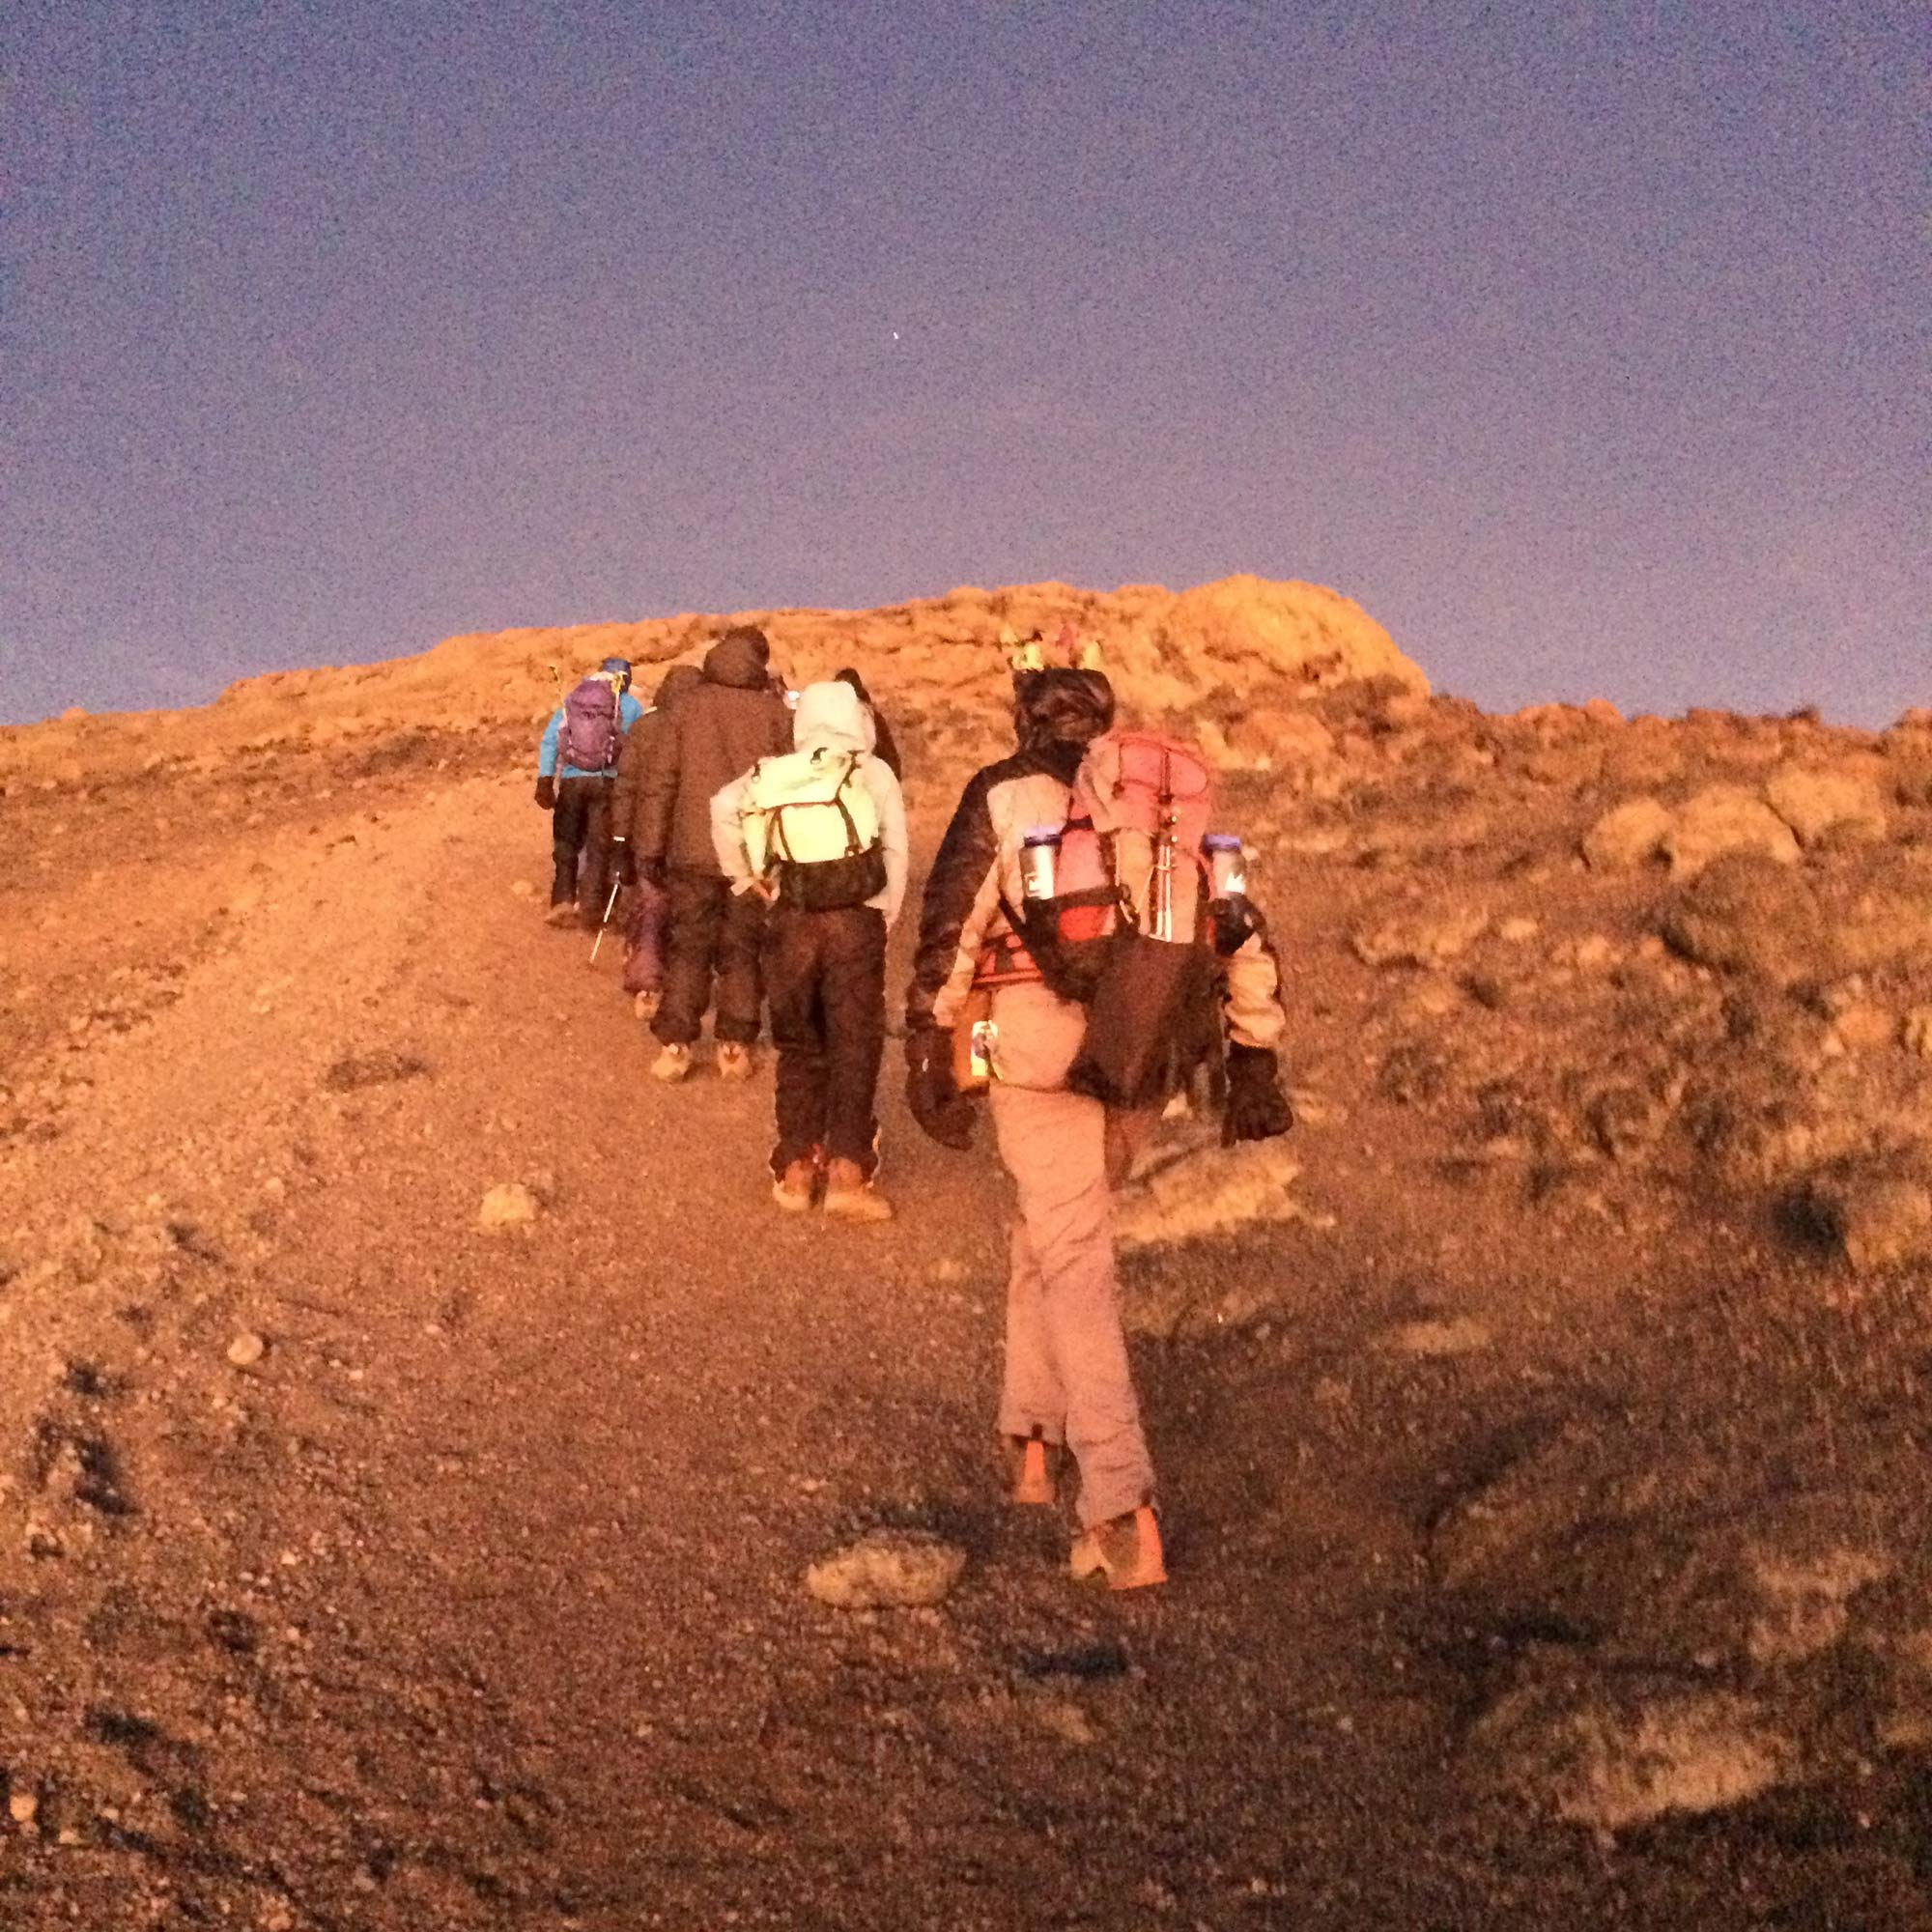 The sun bring welcome warmth to Kilimanjaro's icy-cold summit.